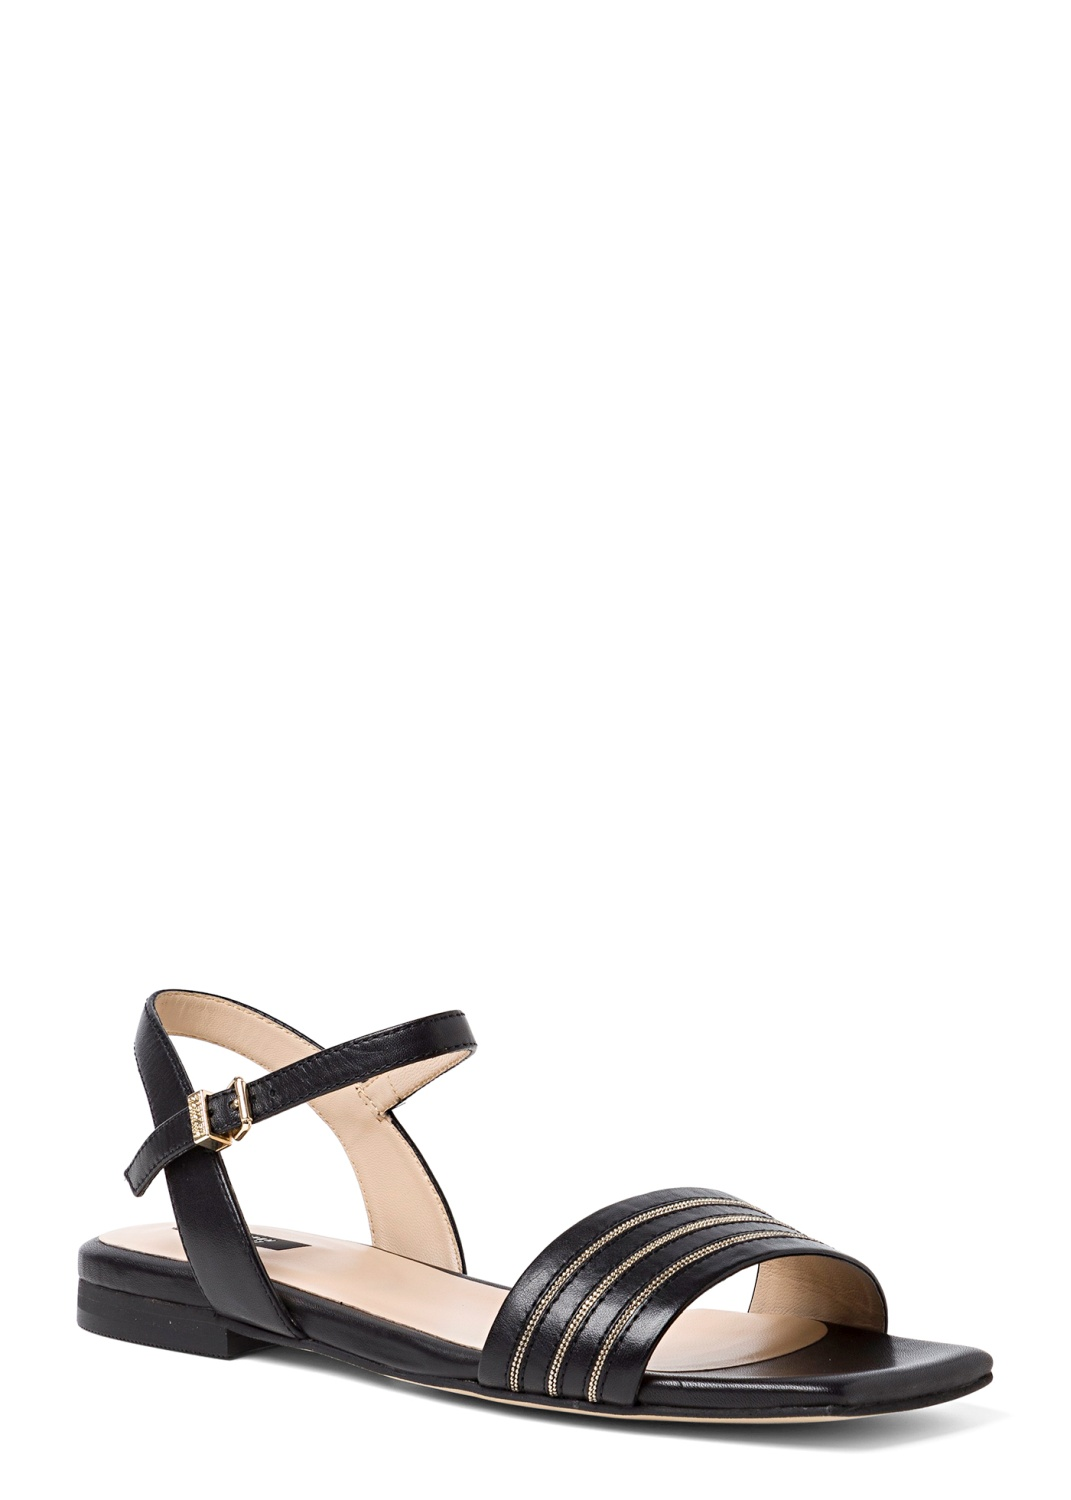 9_Flat Squared Chain Sandal image number 1